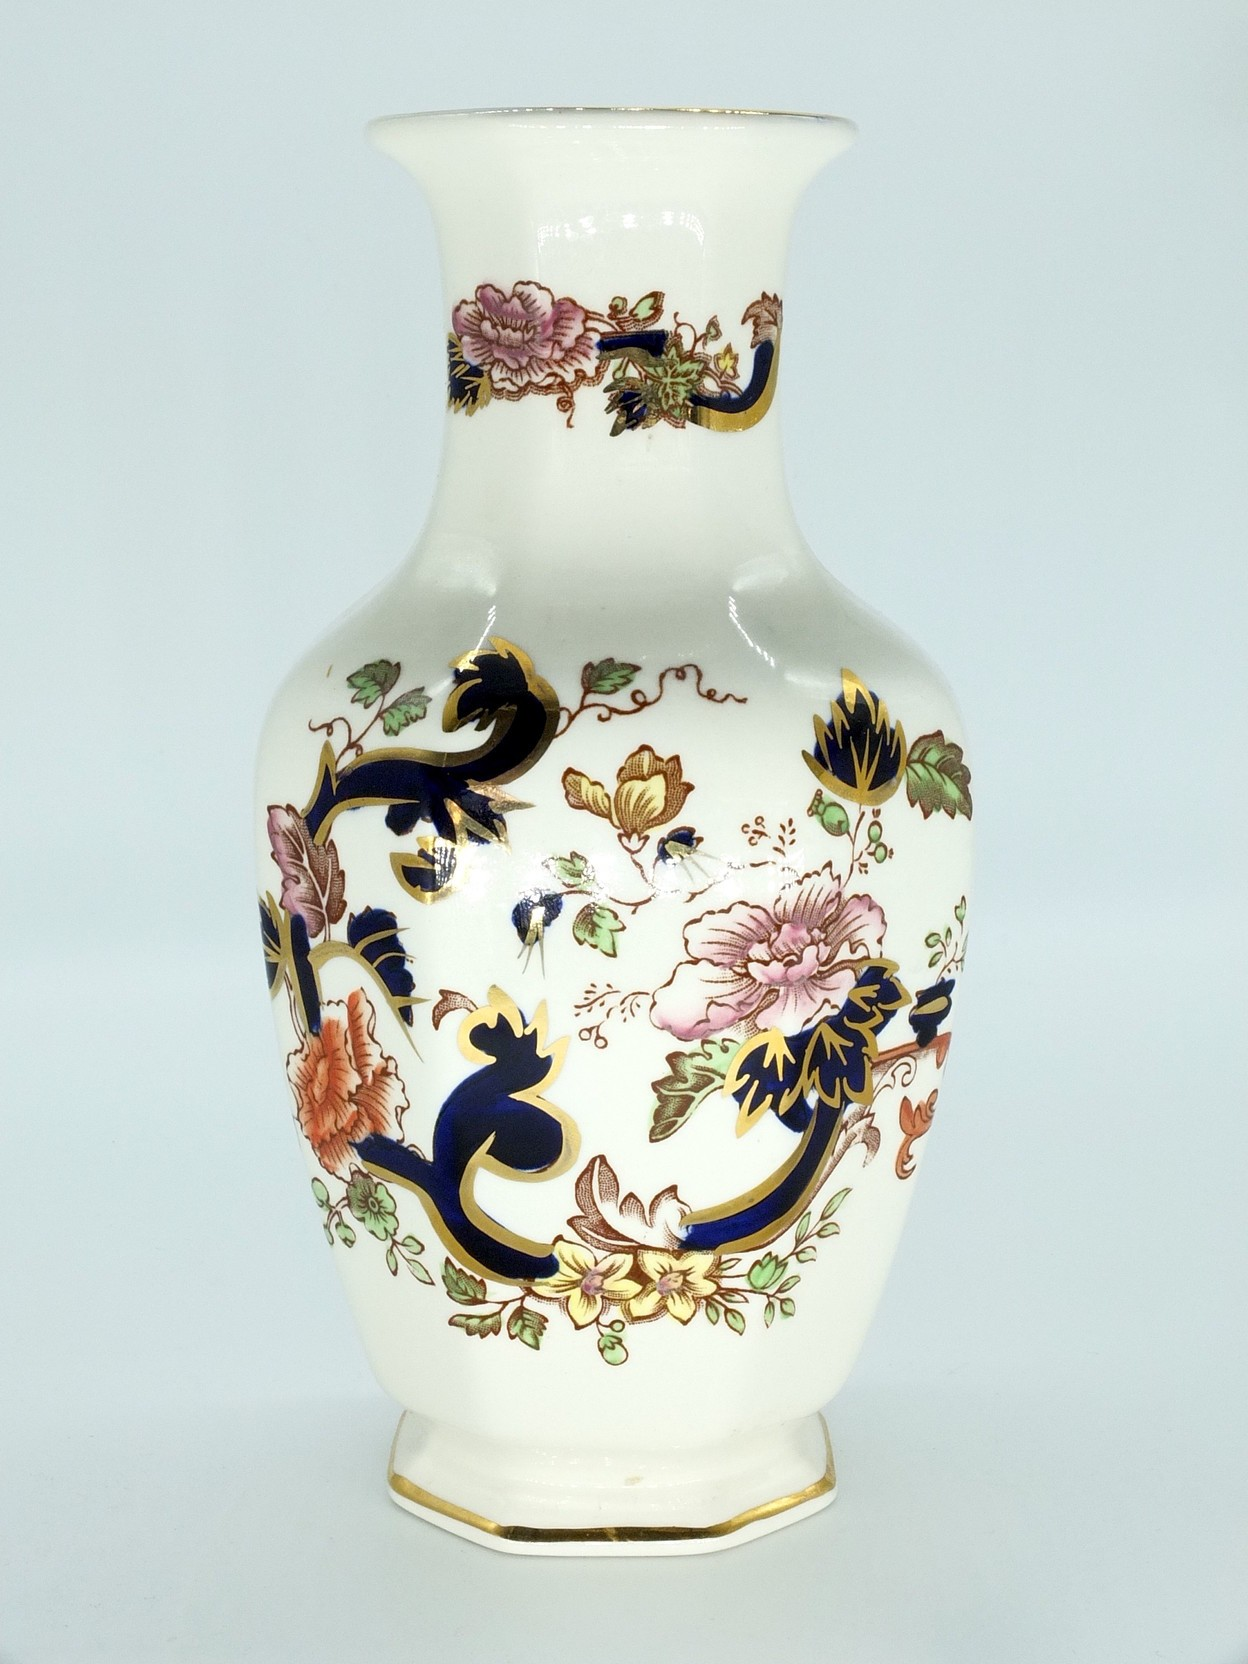 'Antique Masons Mandalay Ironstone Vase'